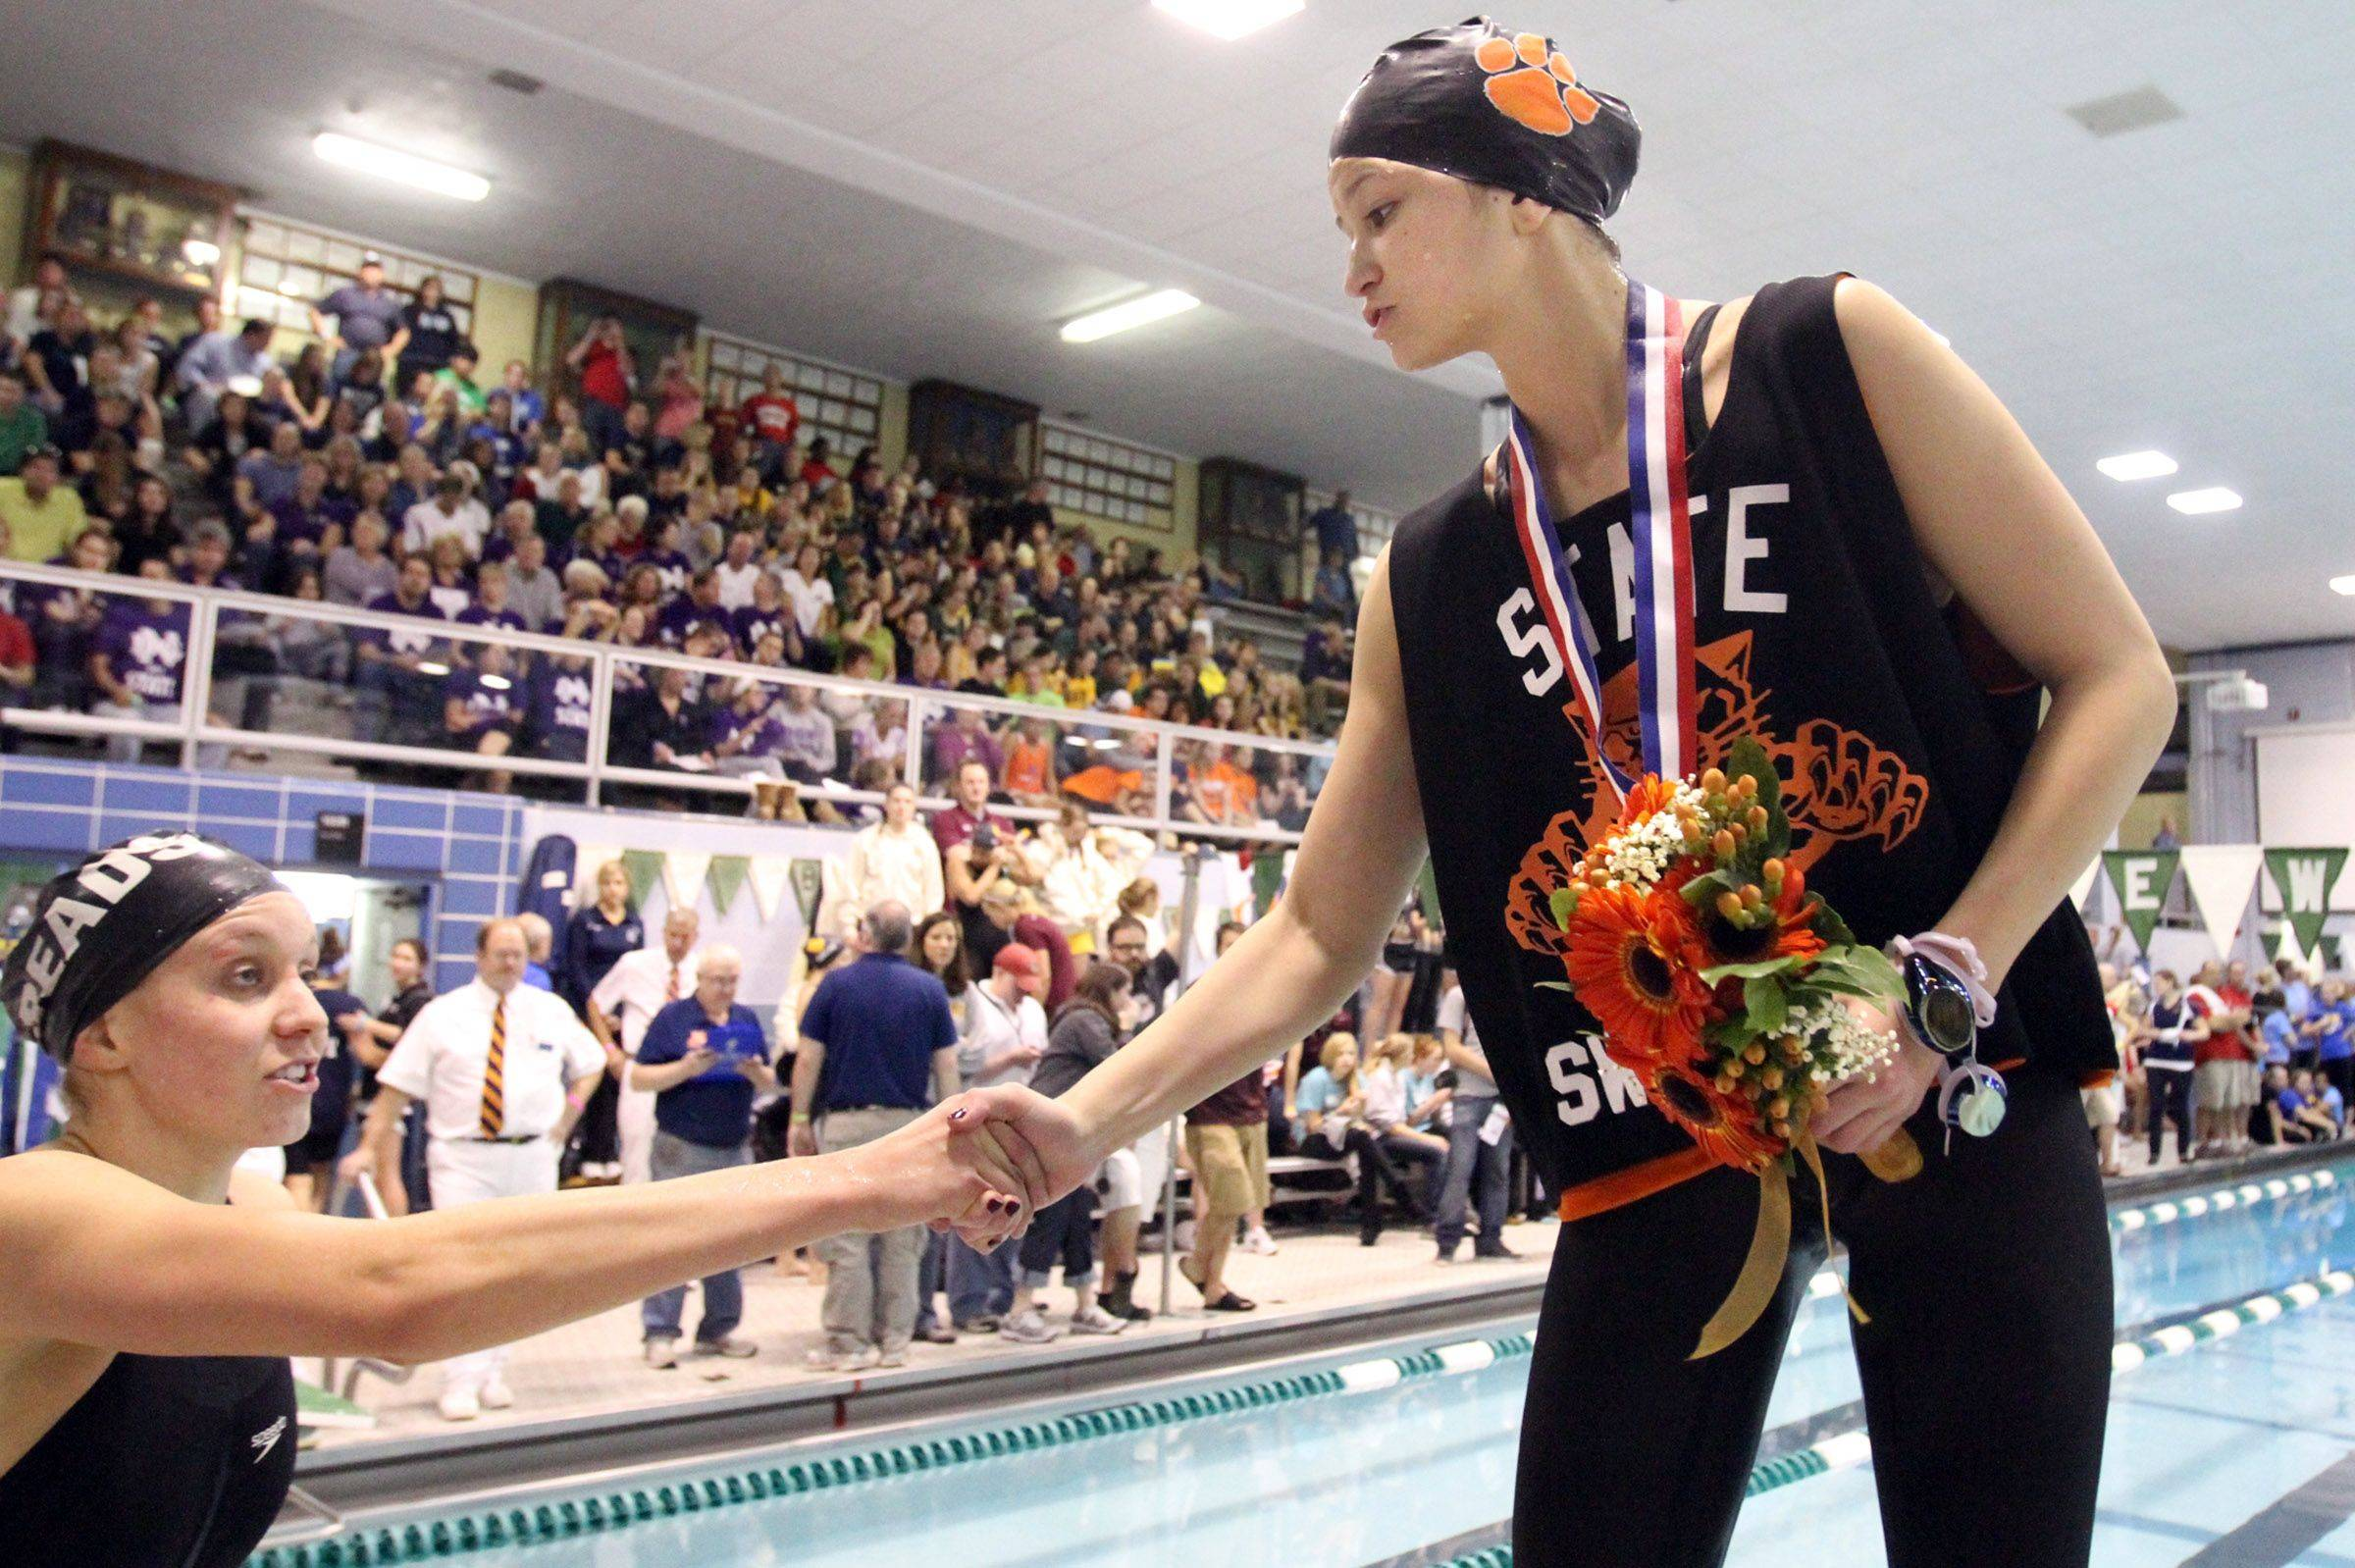 Libertyville's Morgan Dickson, right, placed sixth gets a hand from Rosary's Emily Launer, who placed fourth in the 500-yard freestyle at IHSA state championships in Winnetka on Saturday, November 19th.